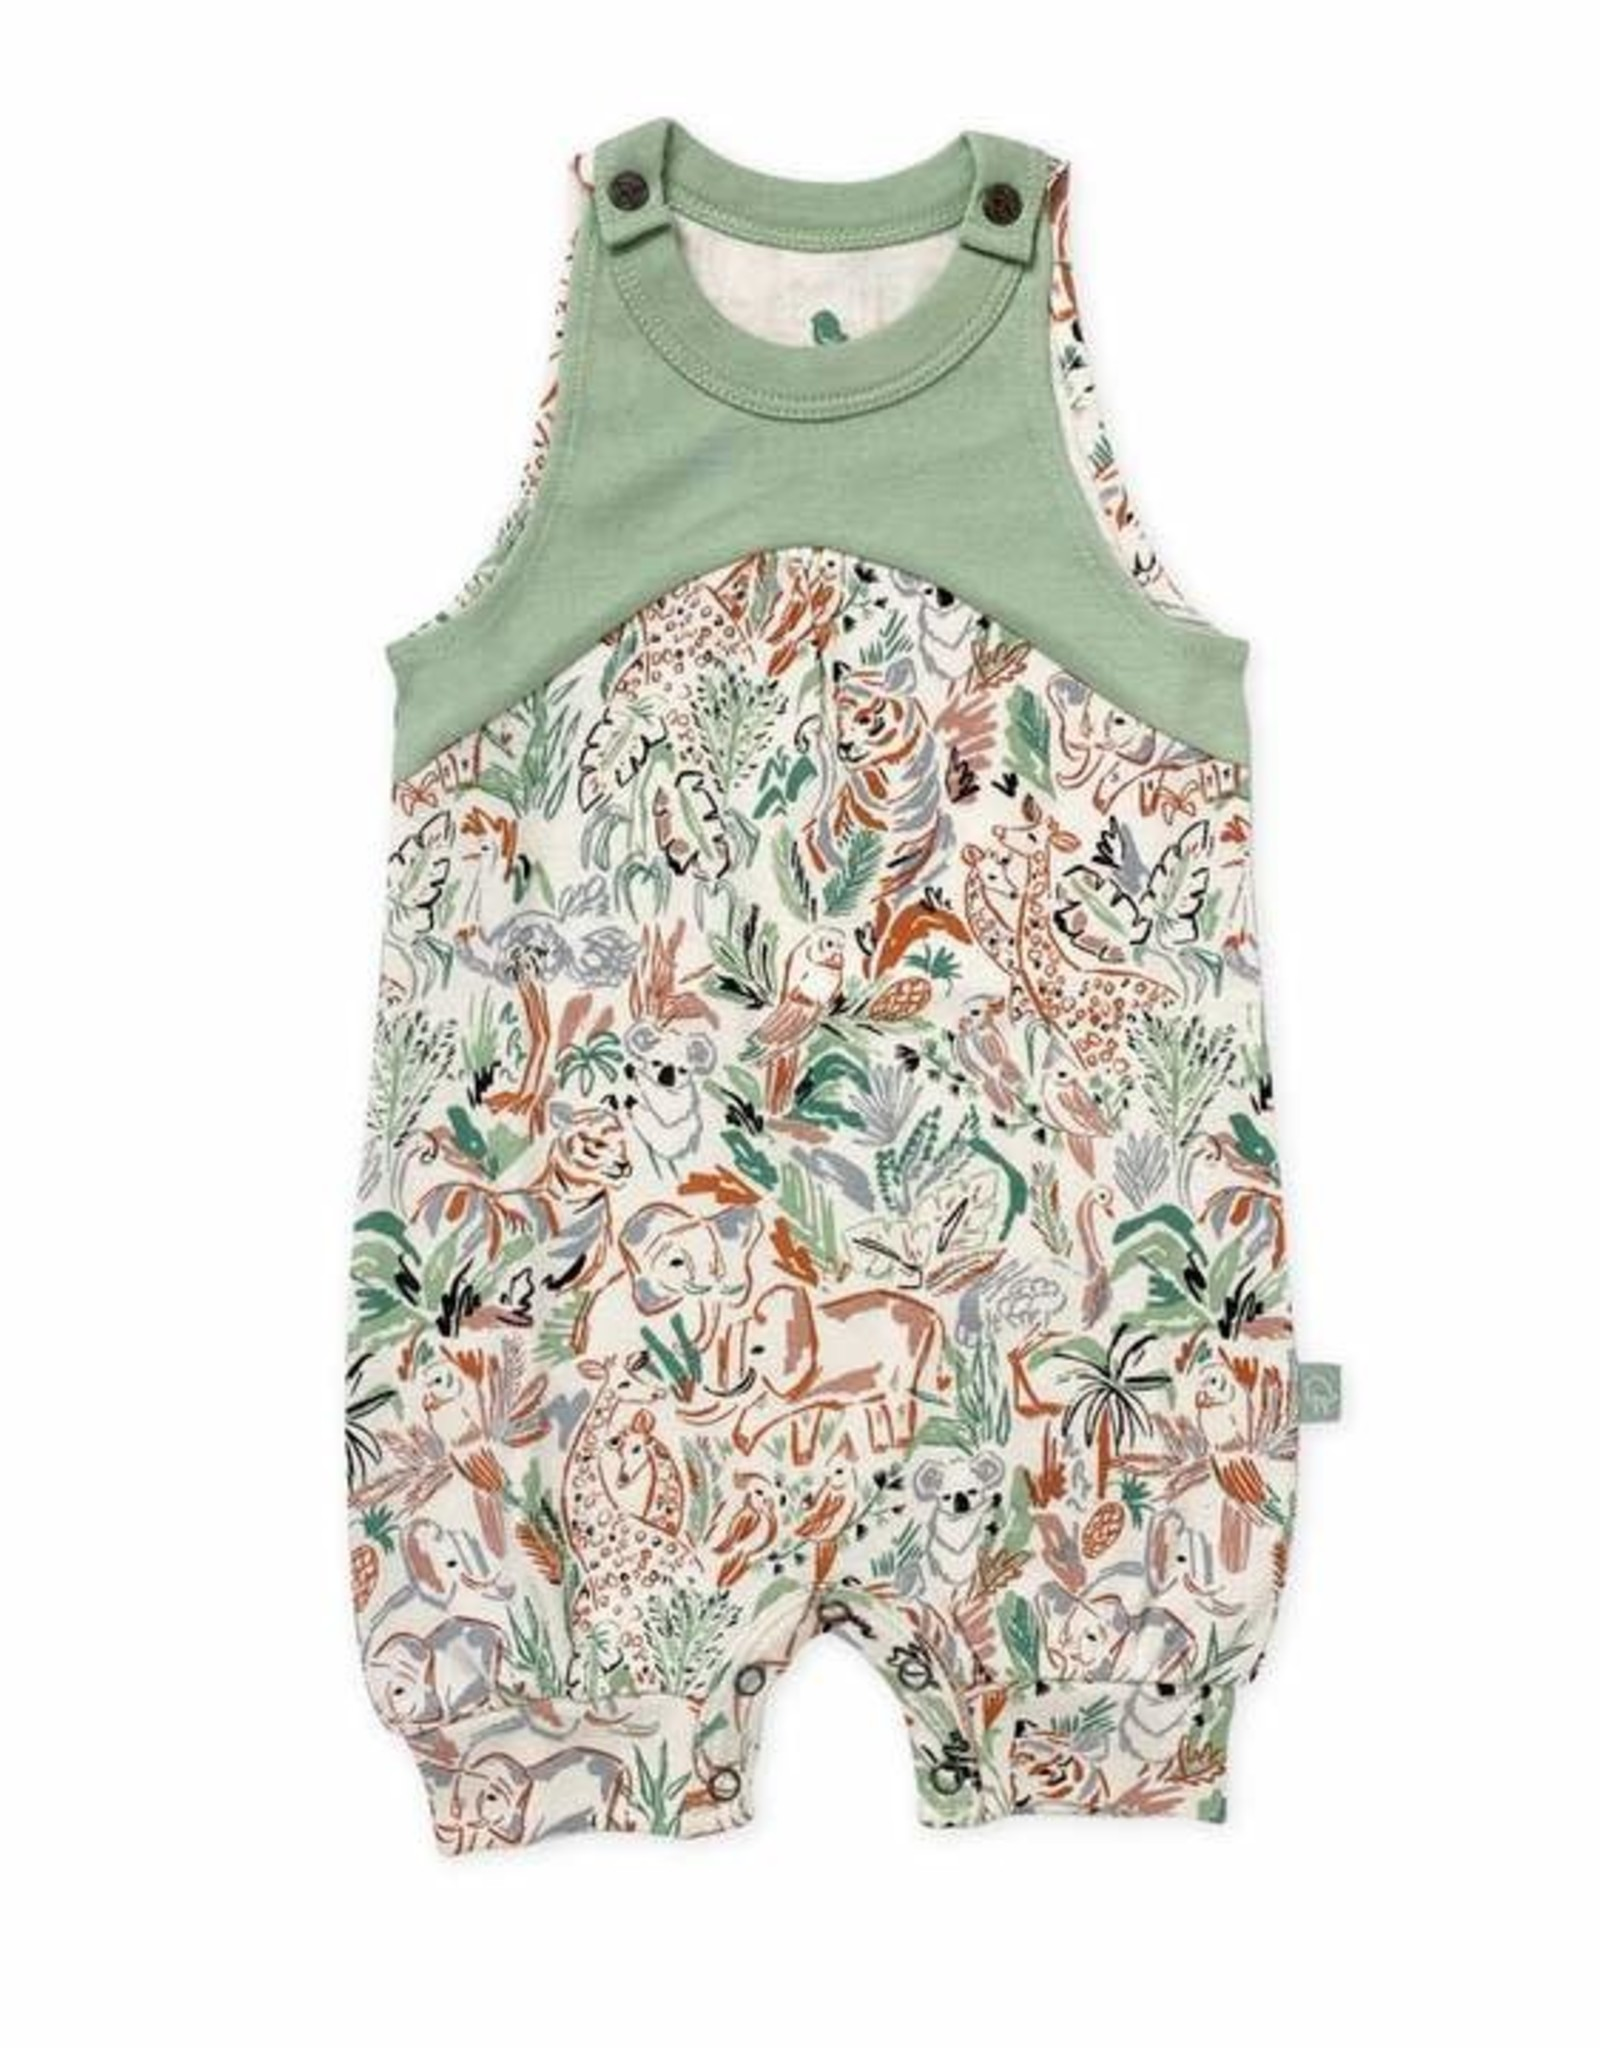 Finn & Emma Animal Kingdom Romper